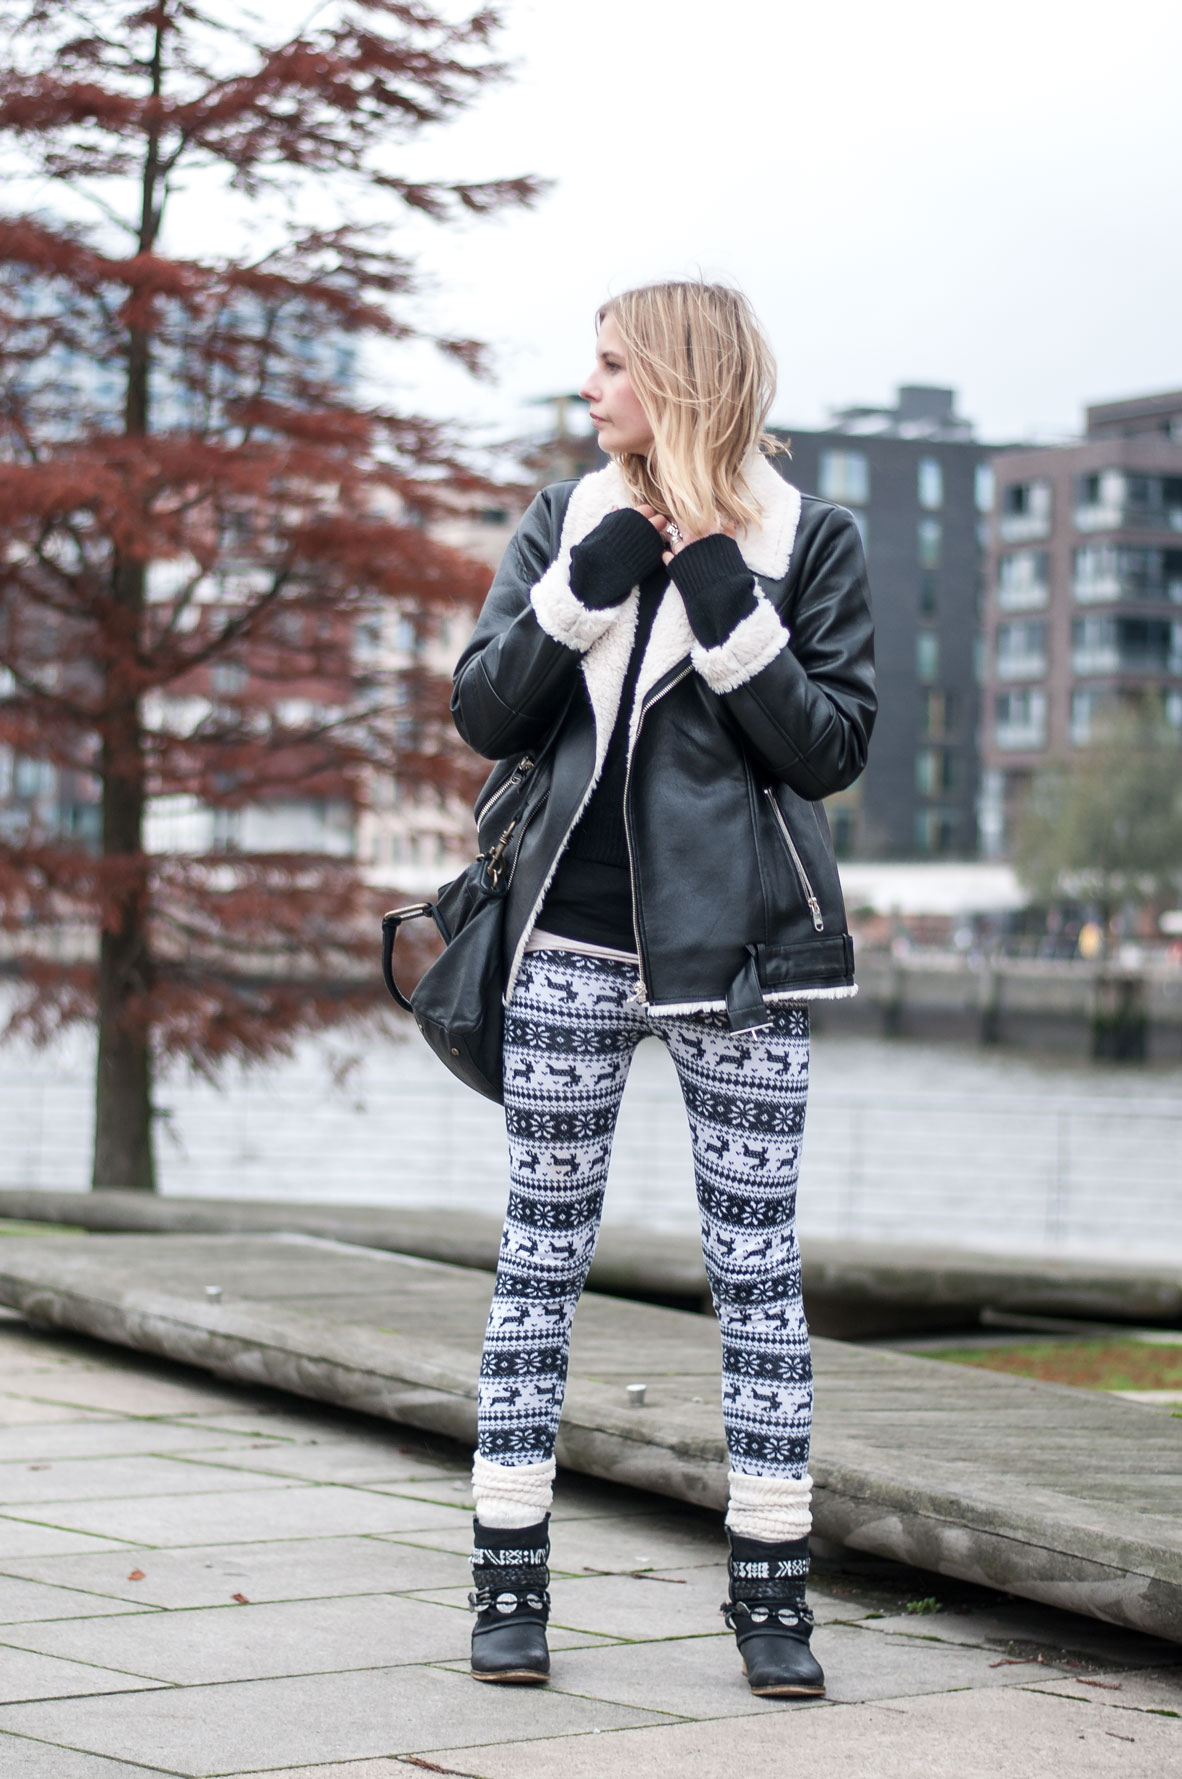 OUTFIT | Rentierleggings